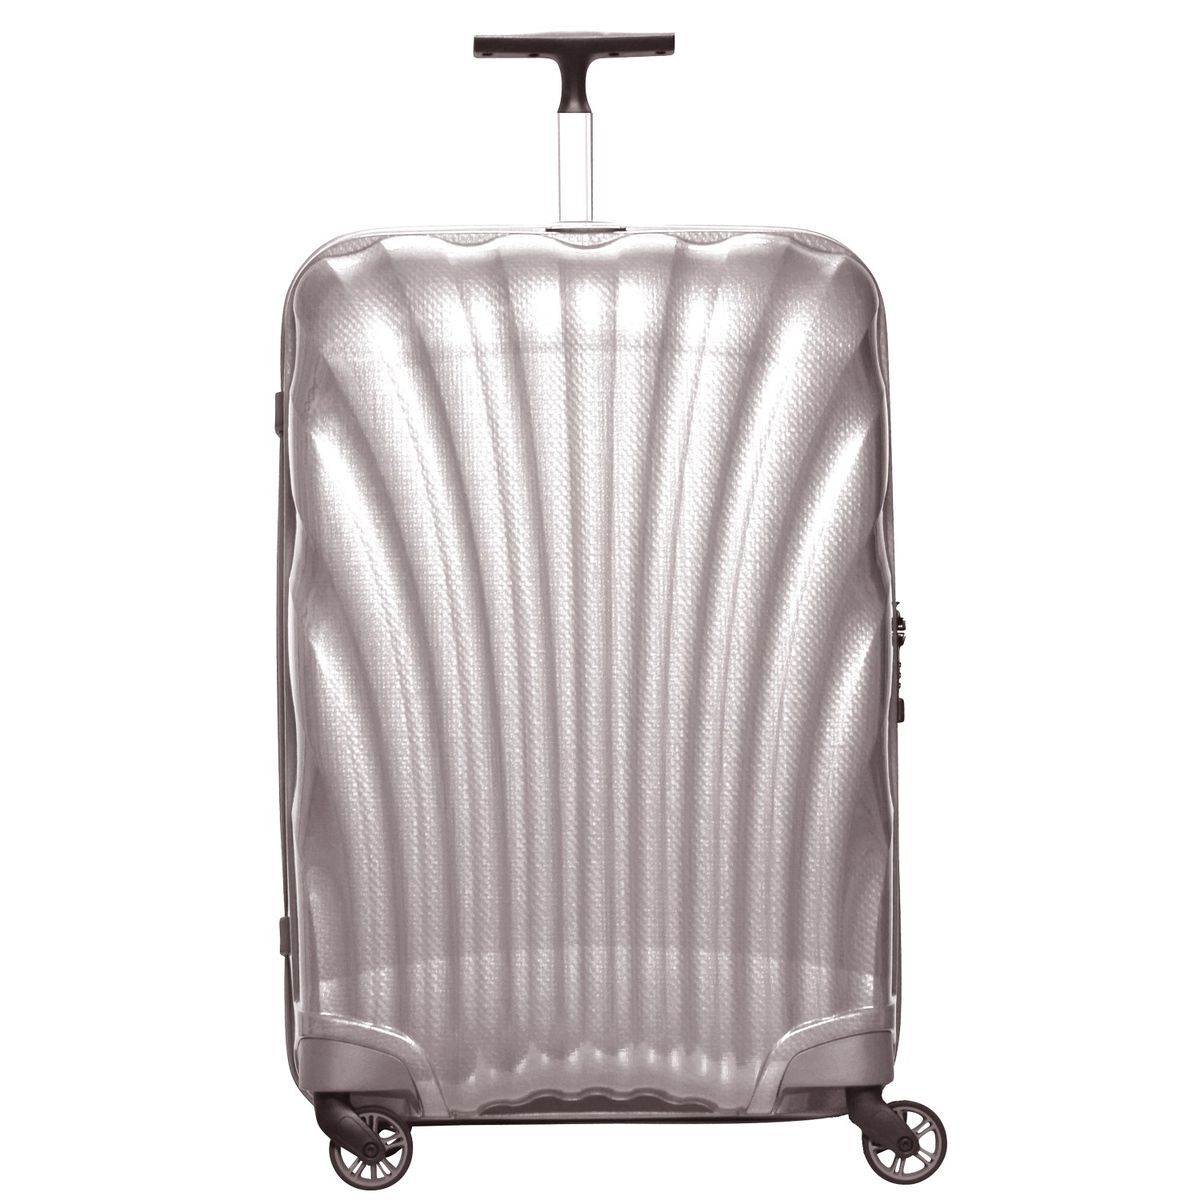 samsonite cosmolite 3 0 spinner fl2 4 rollen trolley 81 cm pearl karstadt online shop. Black Bedroom Furniture Sets. Home Design Ideas